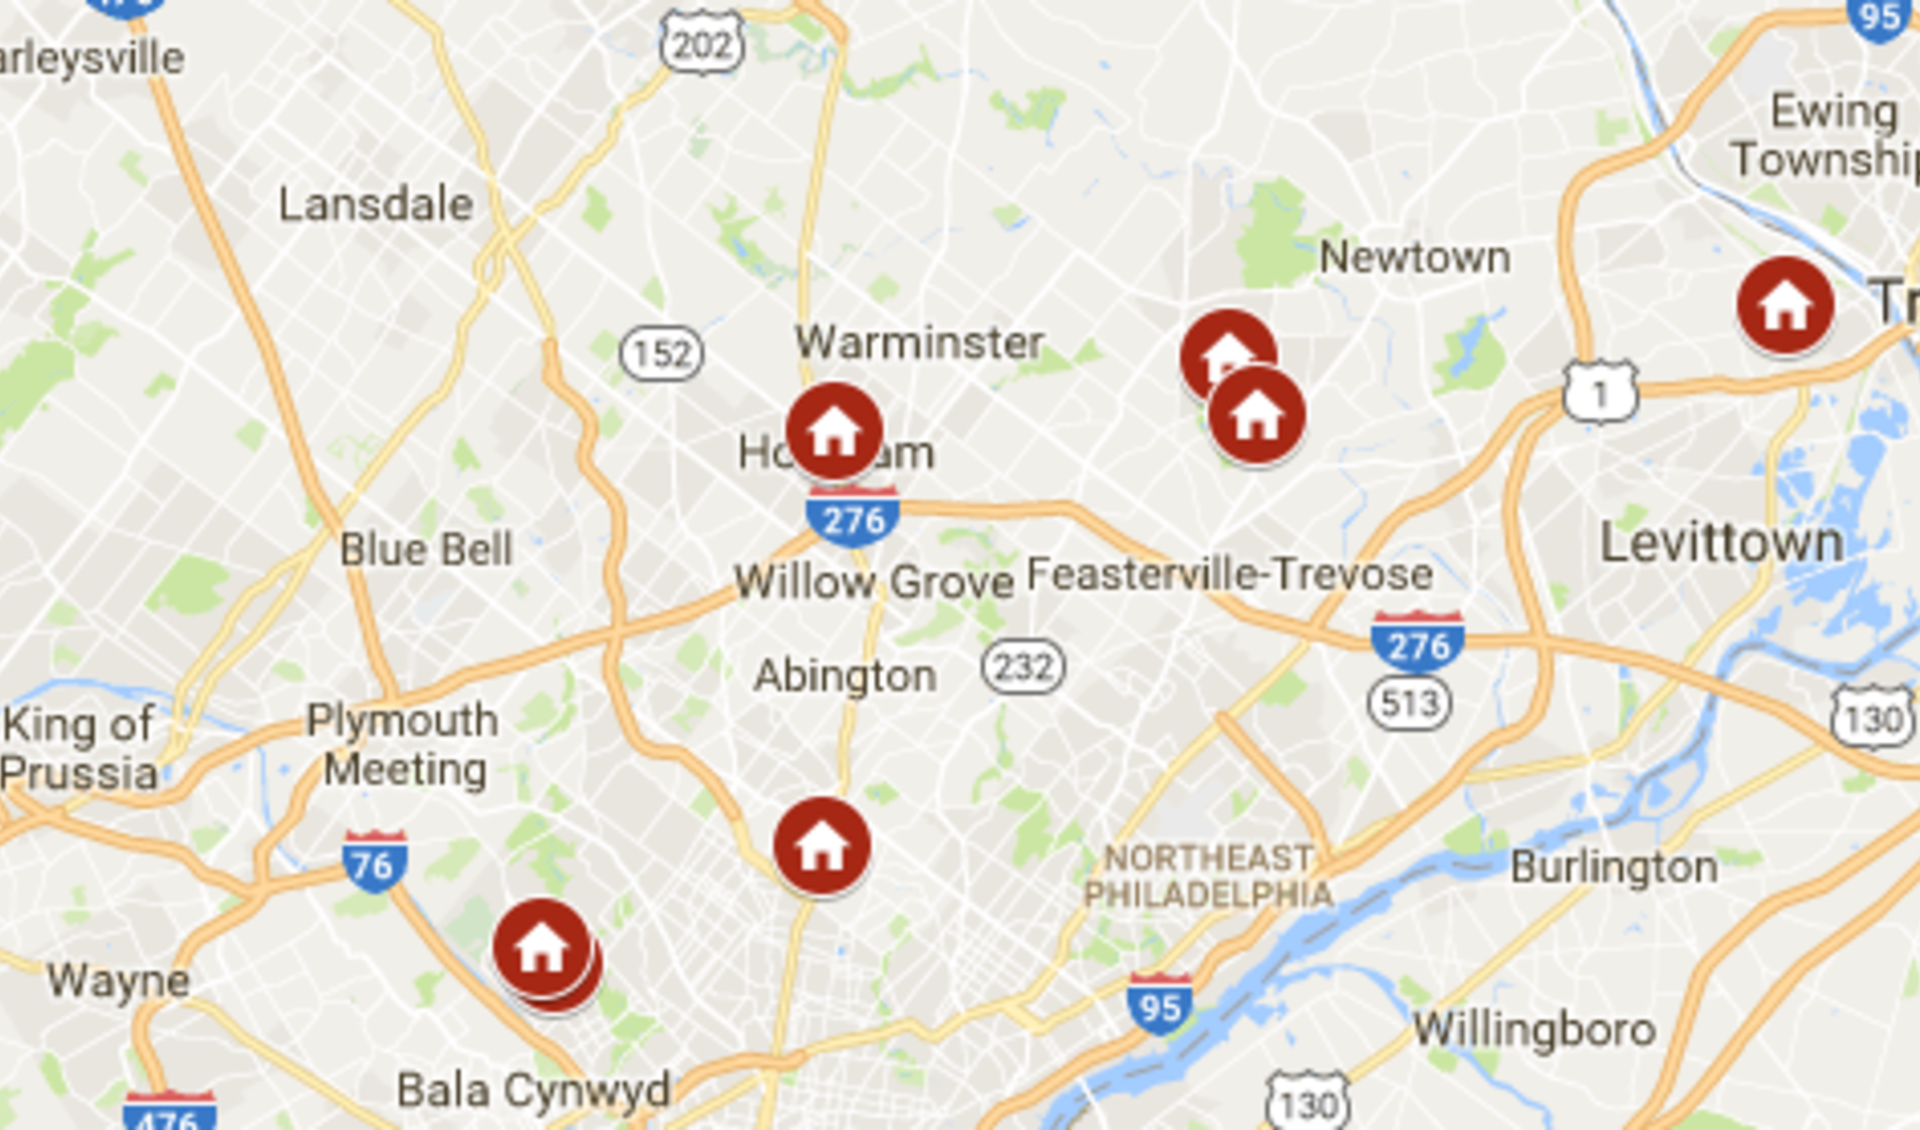 Keller Williams Newtown's open houses January 20th – January 21st